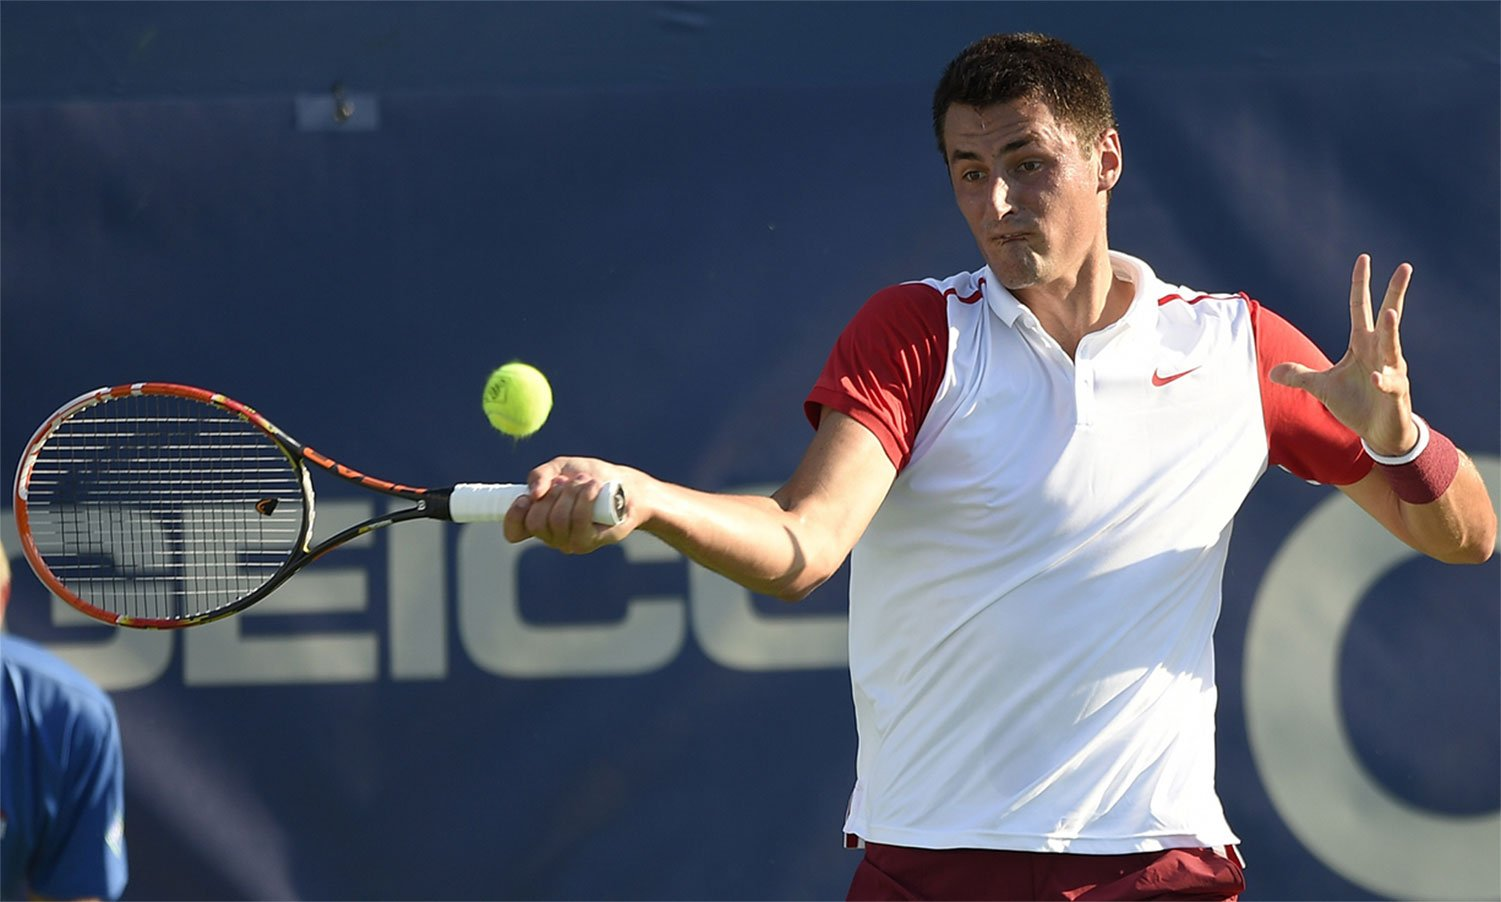 Self-defeating Bernard Tomic tries to give point to his Washington Open rival